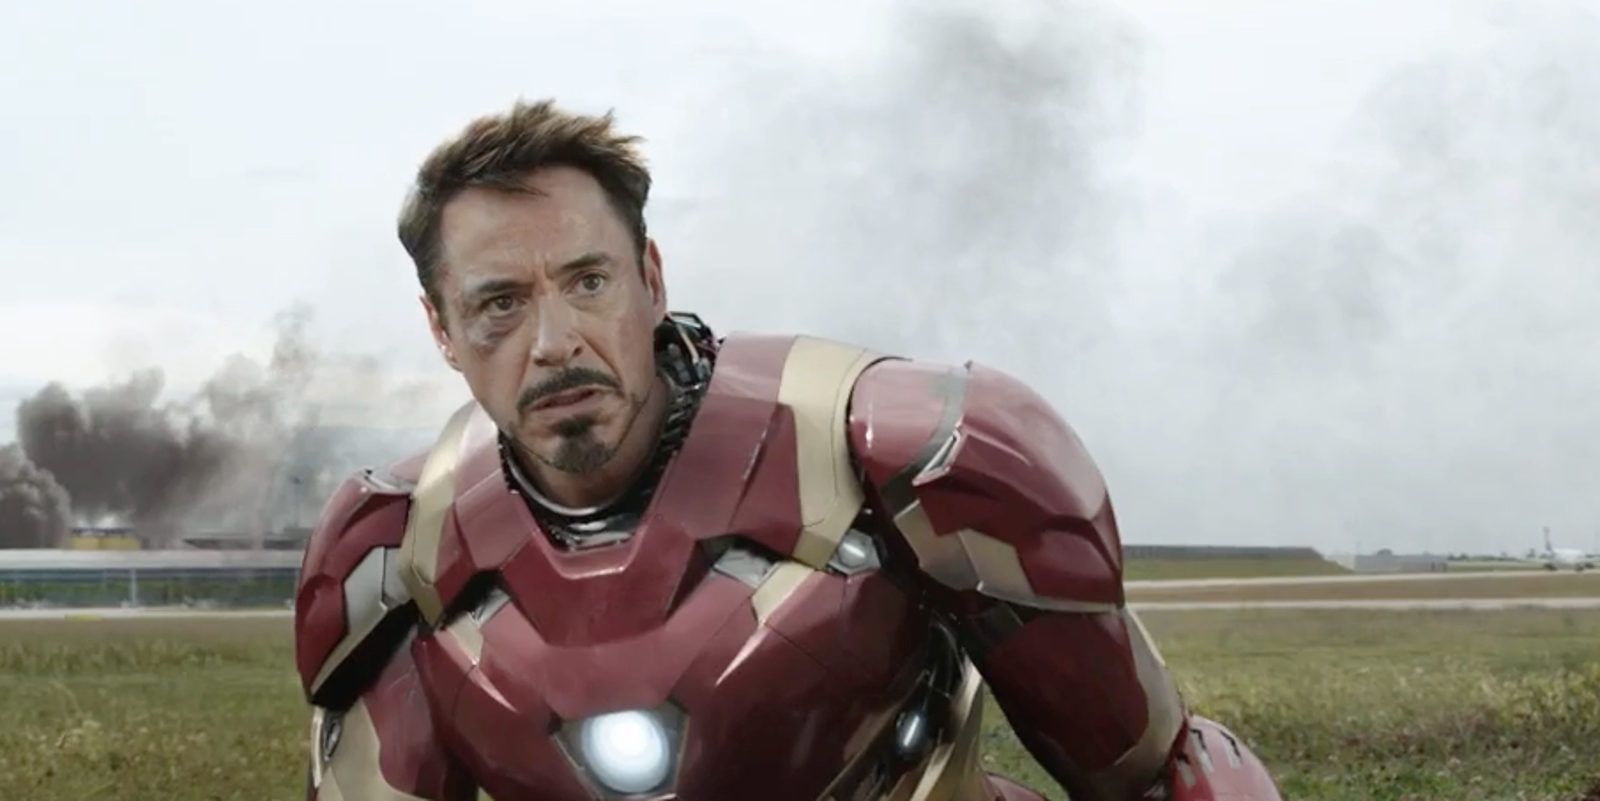 No one in Marvel's Avengers universe has a character arc